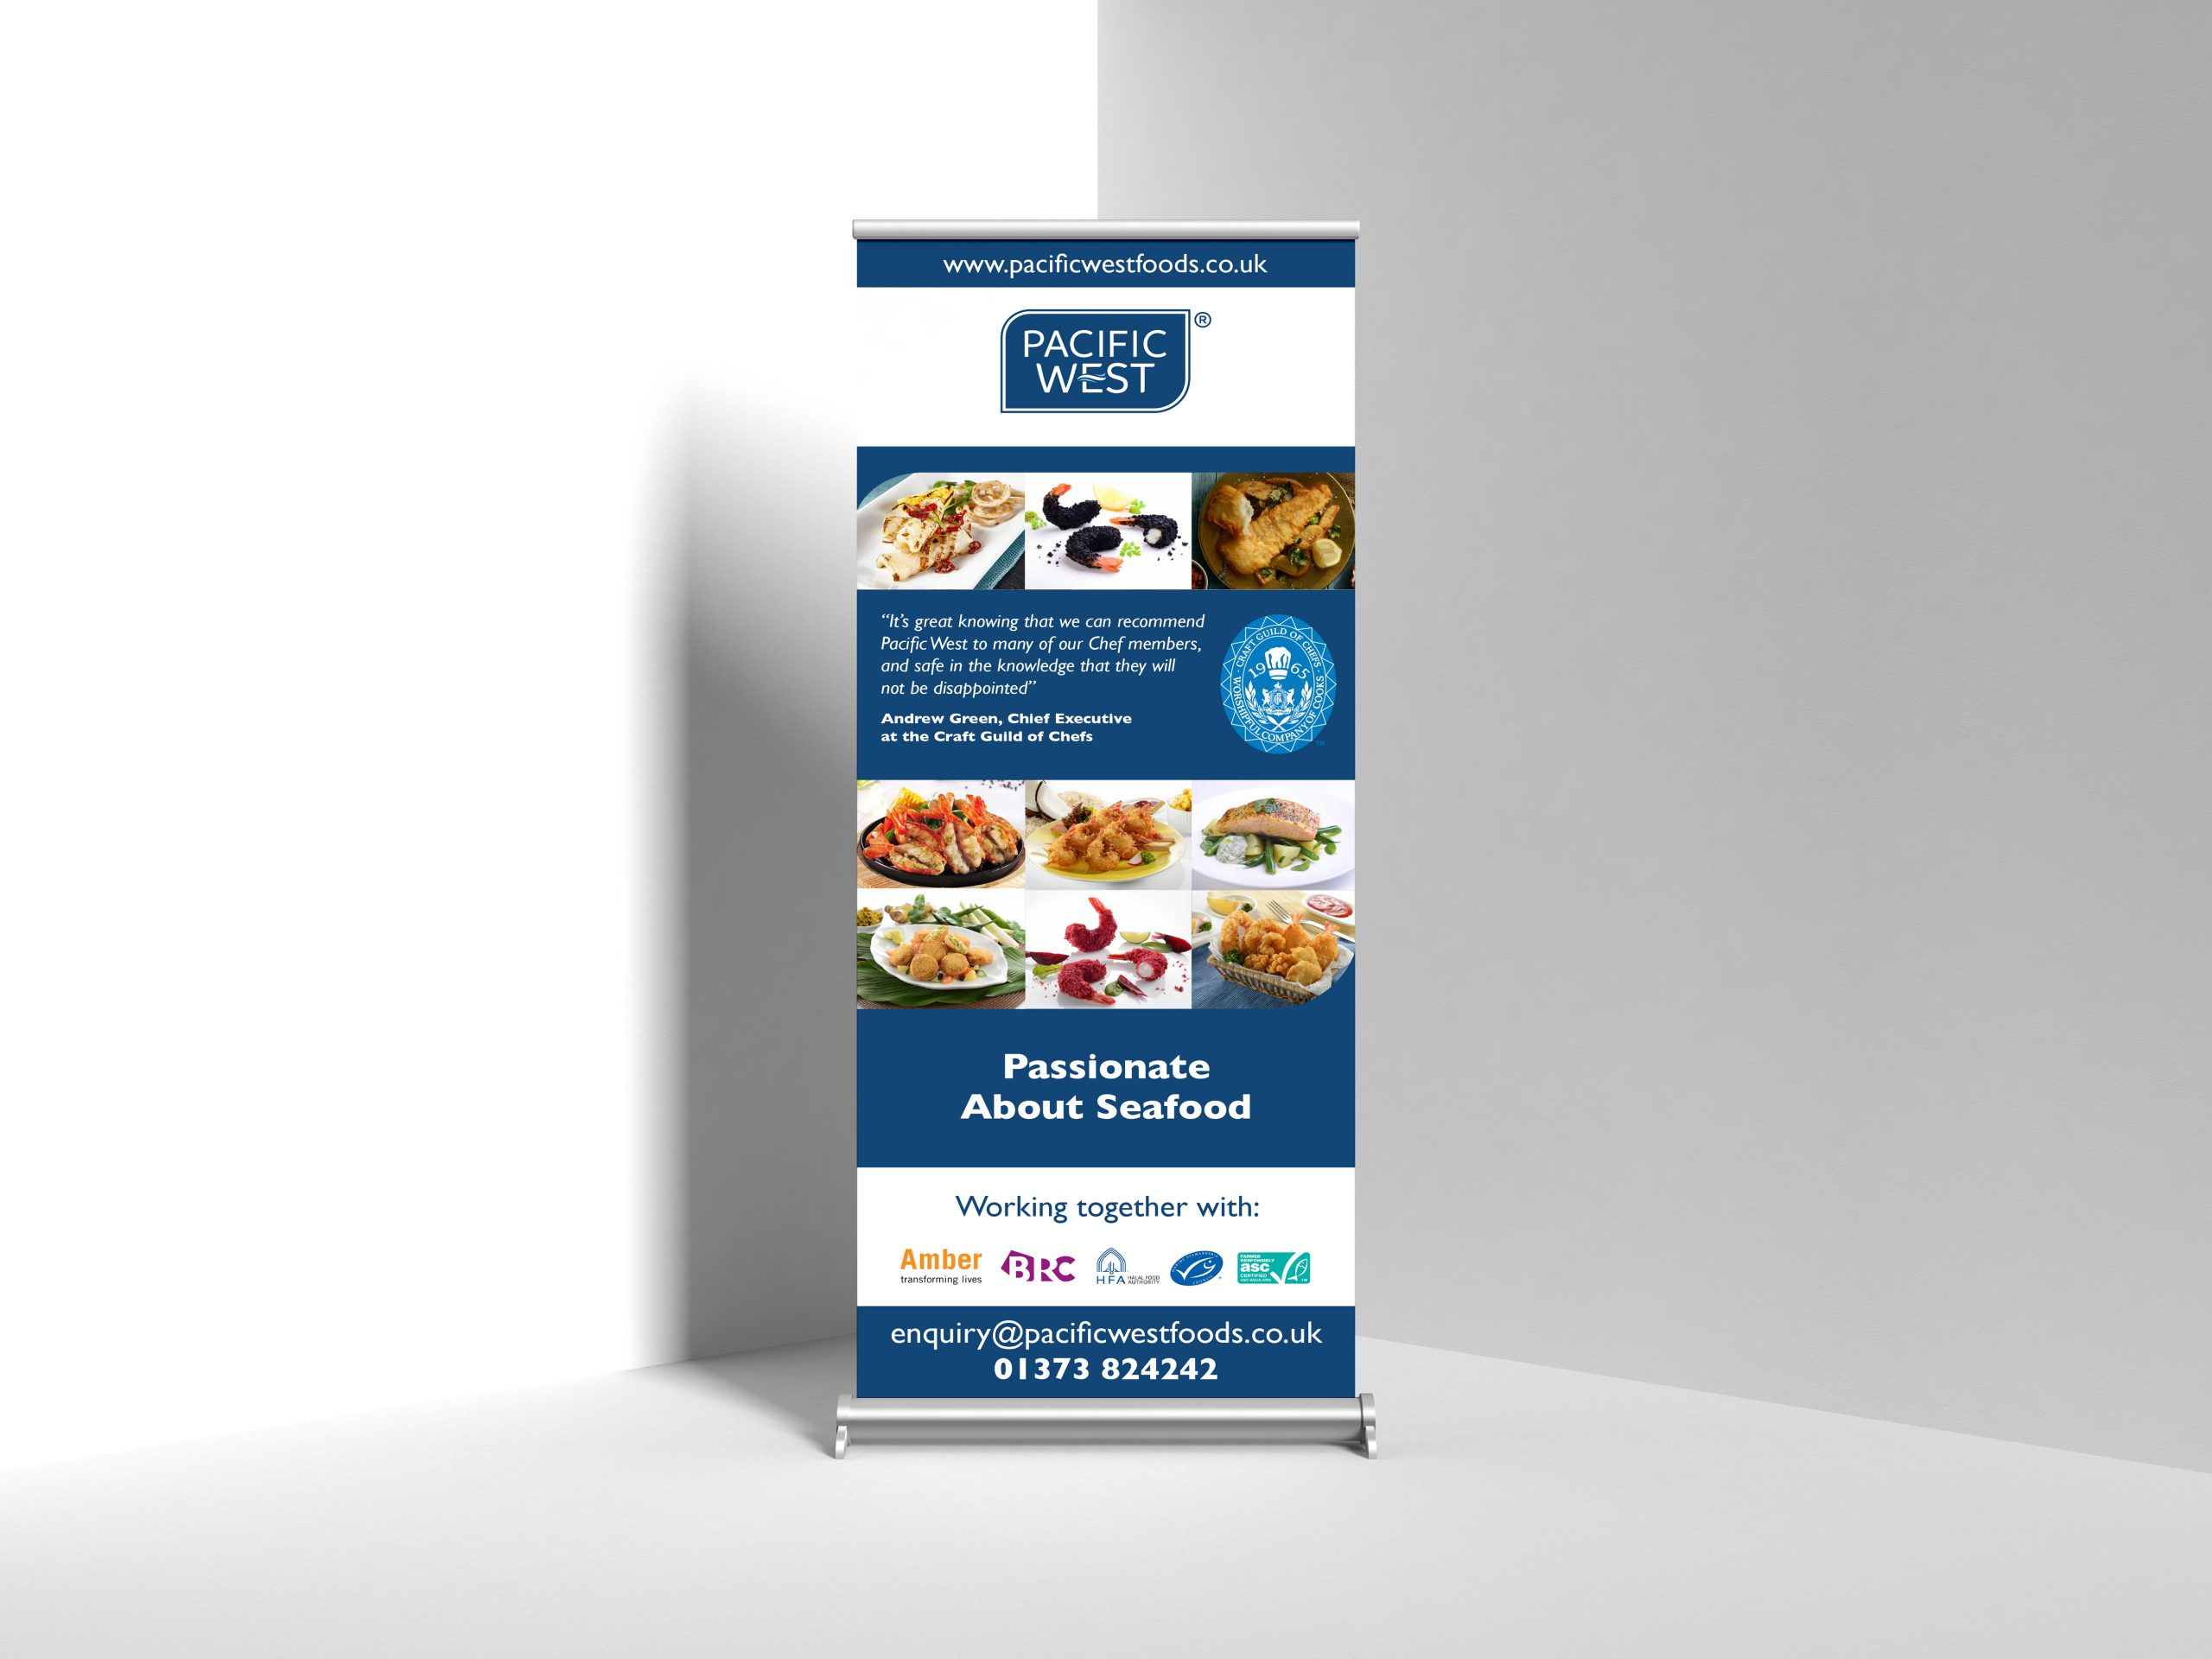 Exhibition and roller banner design for food manufacturer and distributor